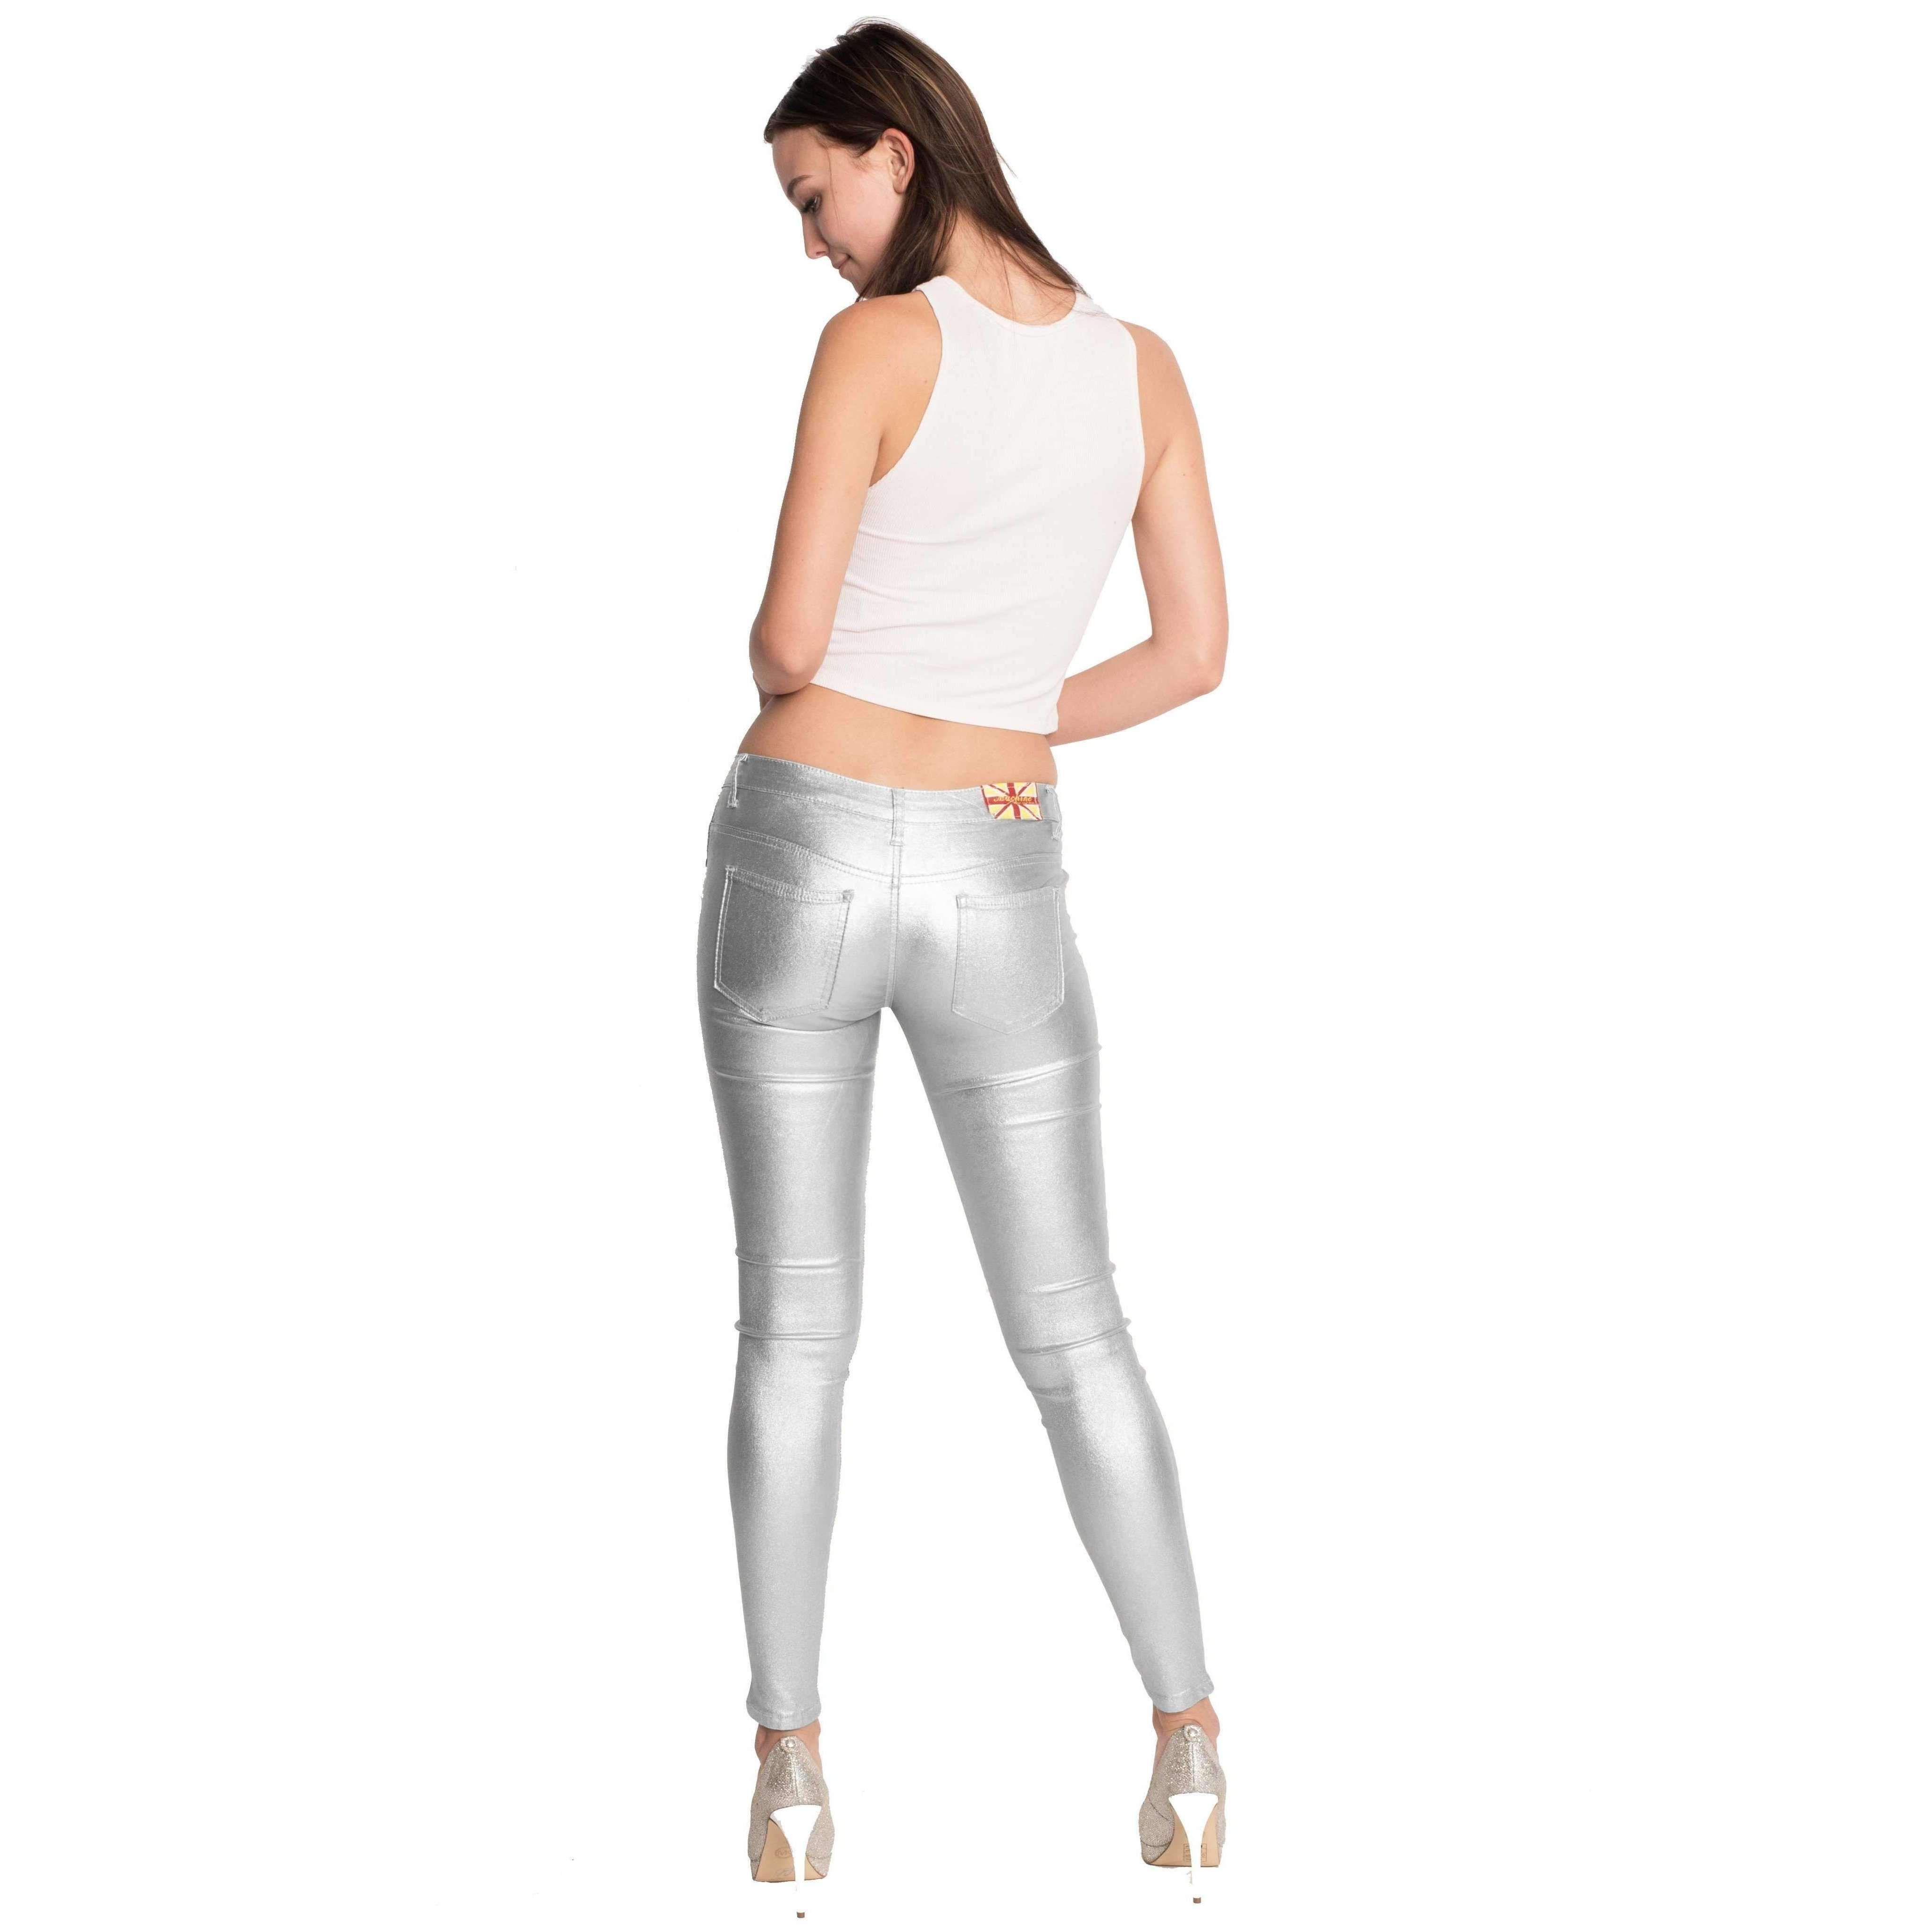 dde9ea82867 Womens Casual Gold Silver Skinny Jeans (DMJ-1A3700) | Products ...